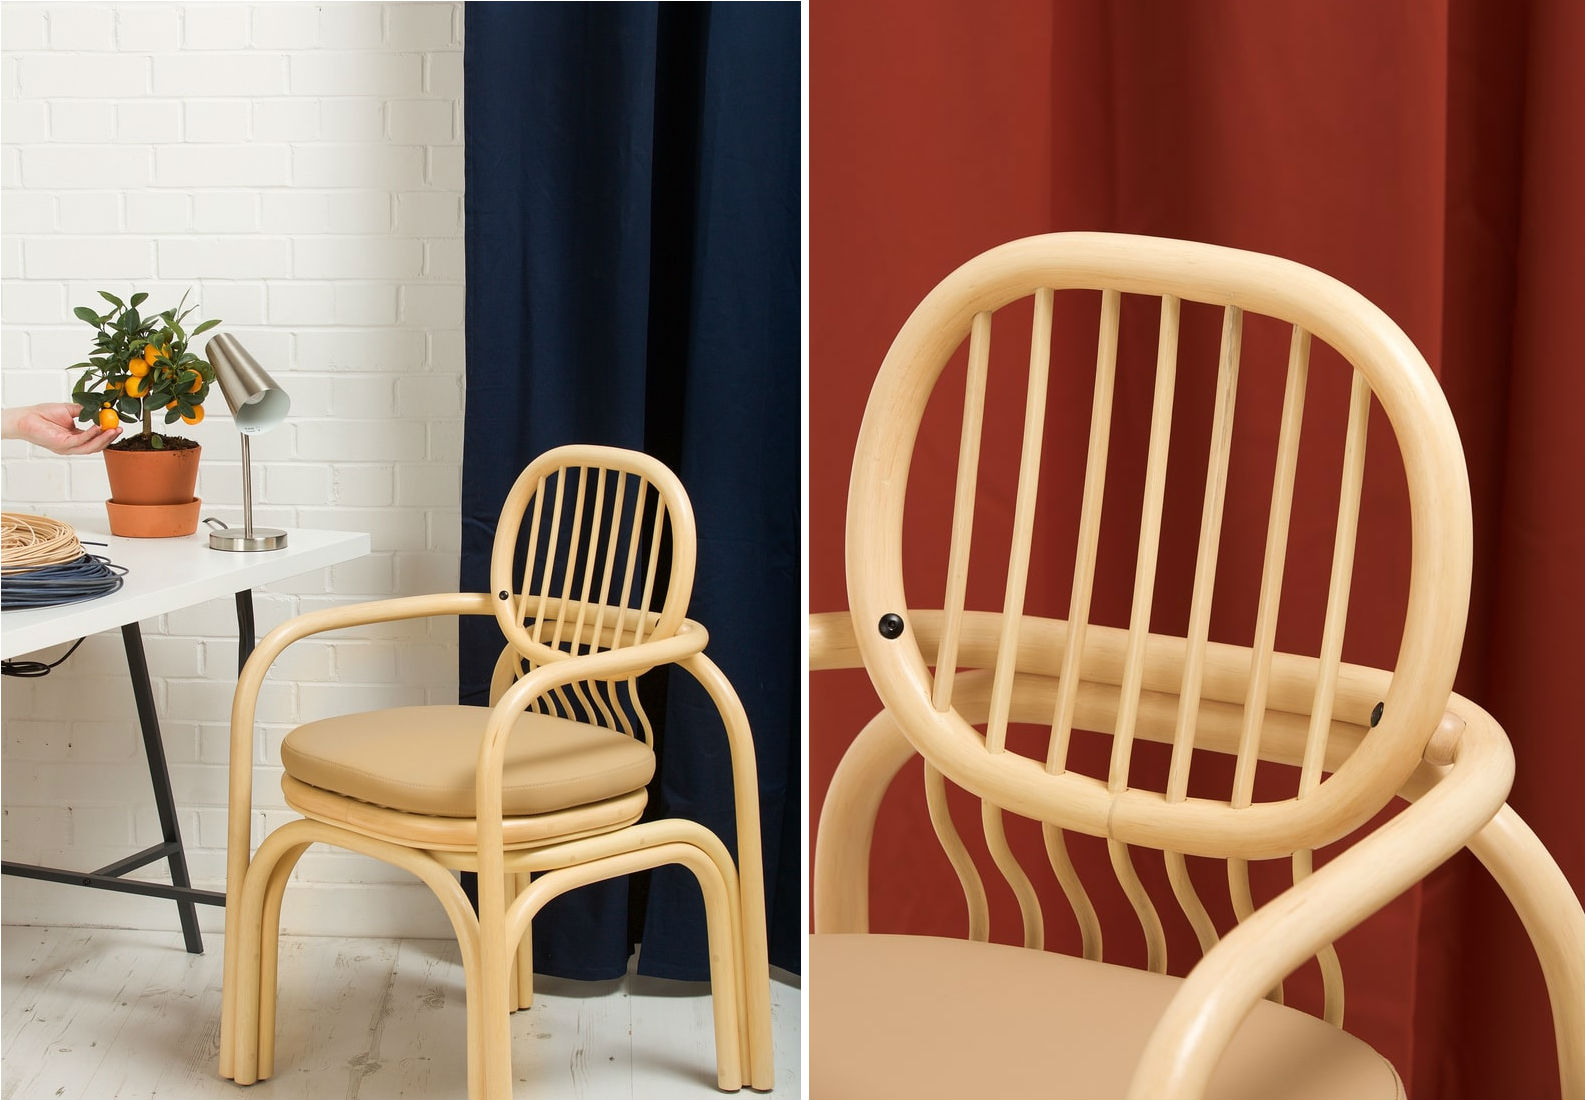 Side by side image of curved rattan chair with cushion beside a desk and a closeup up the backrest.